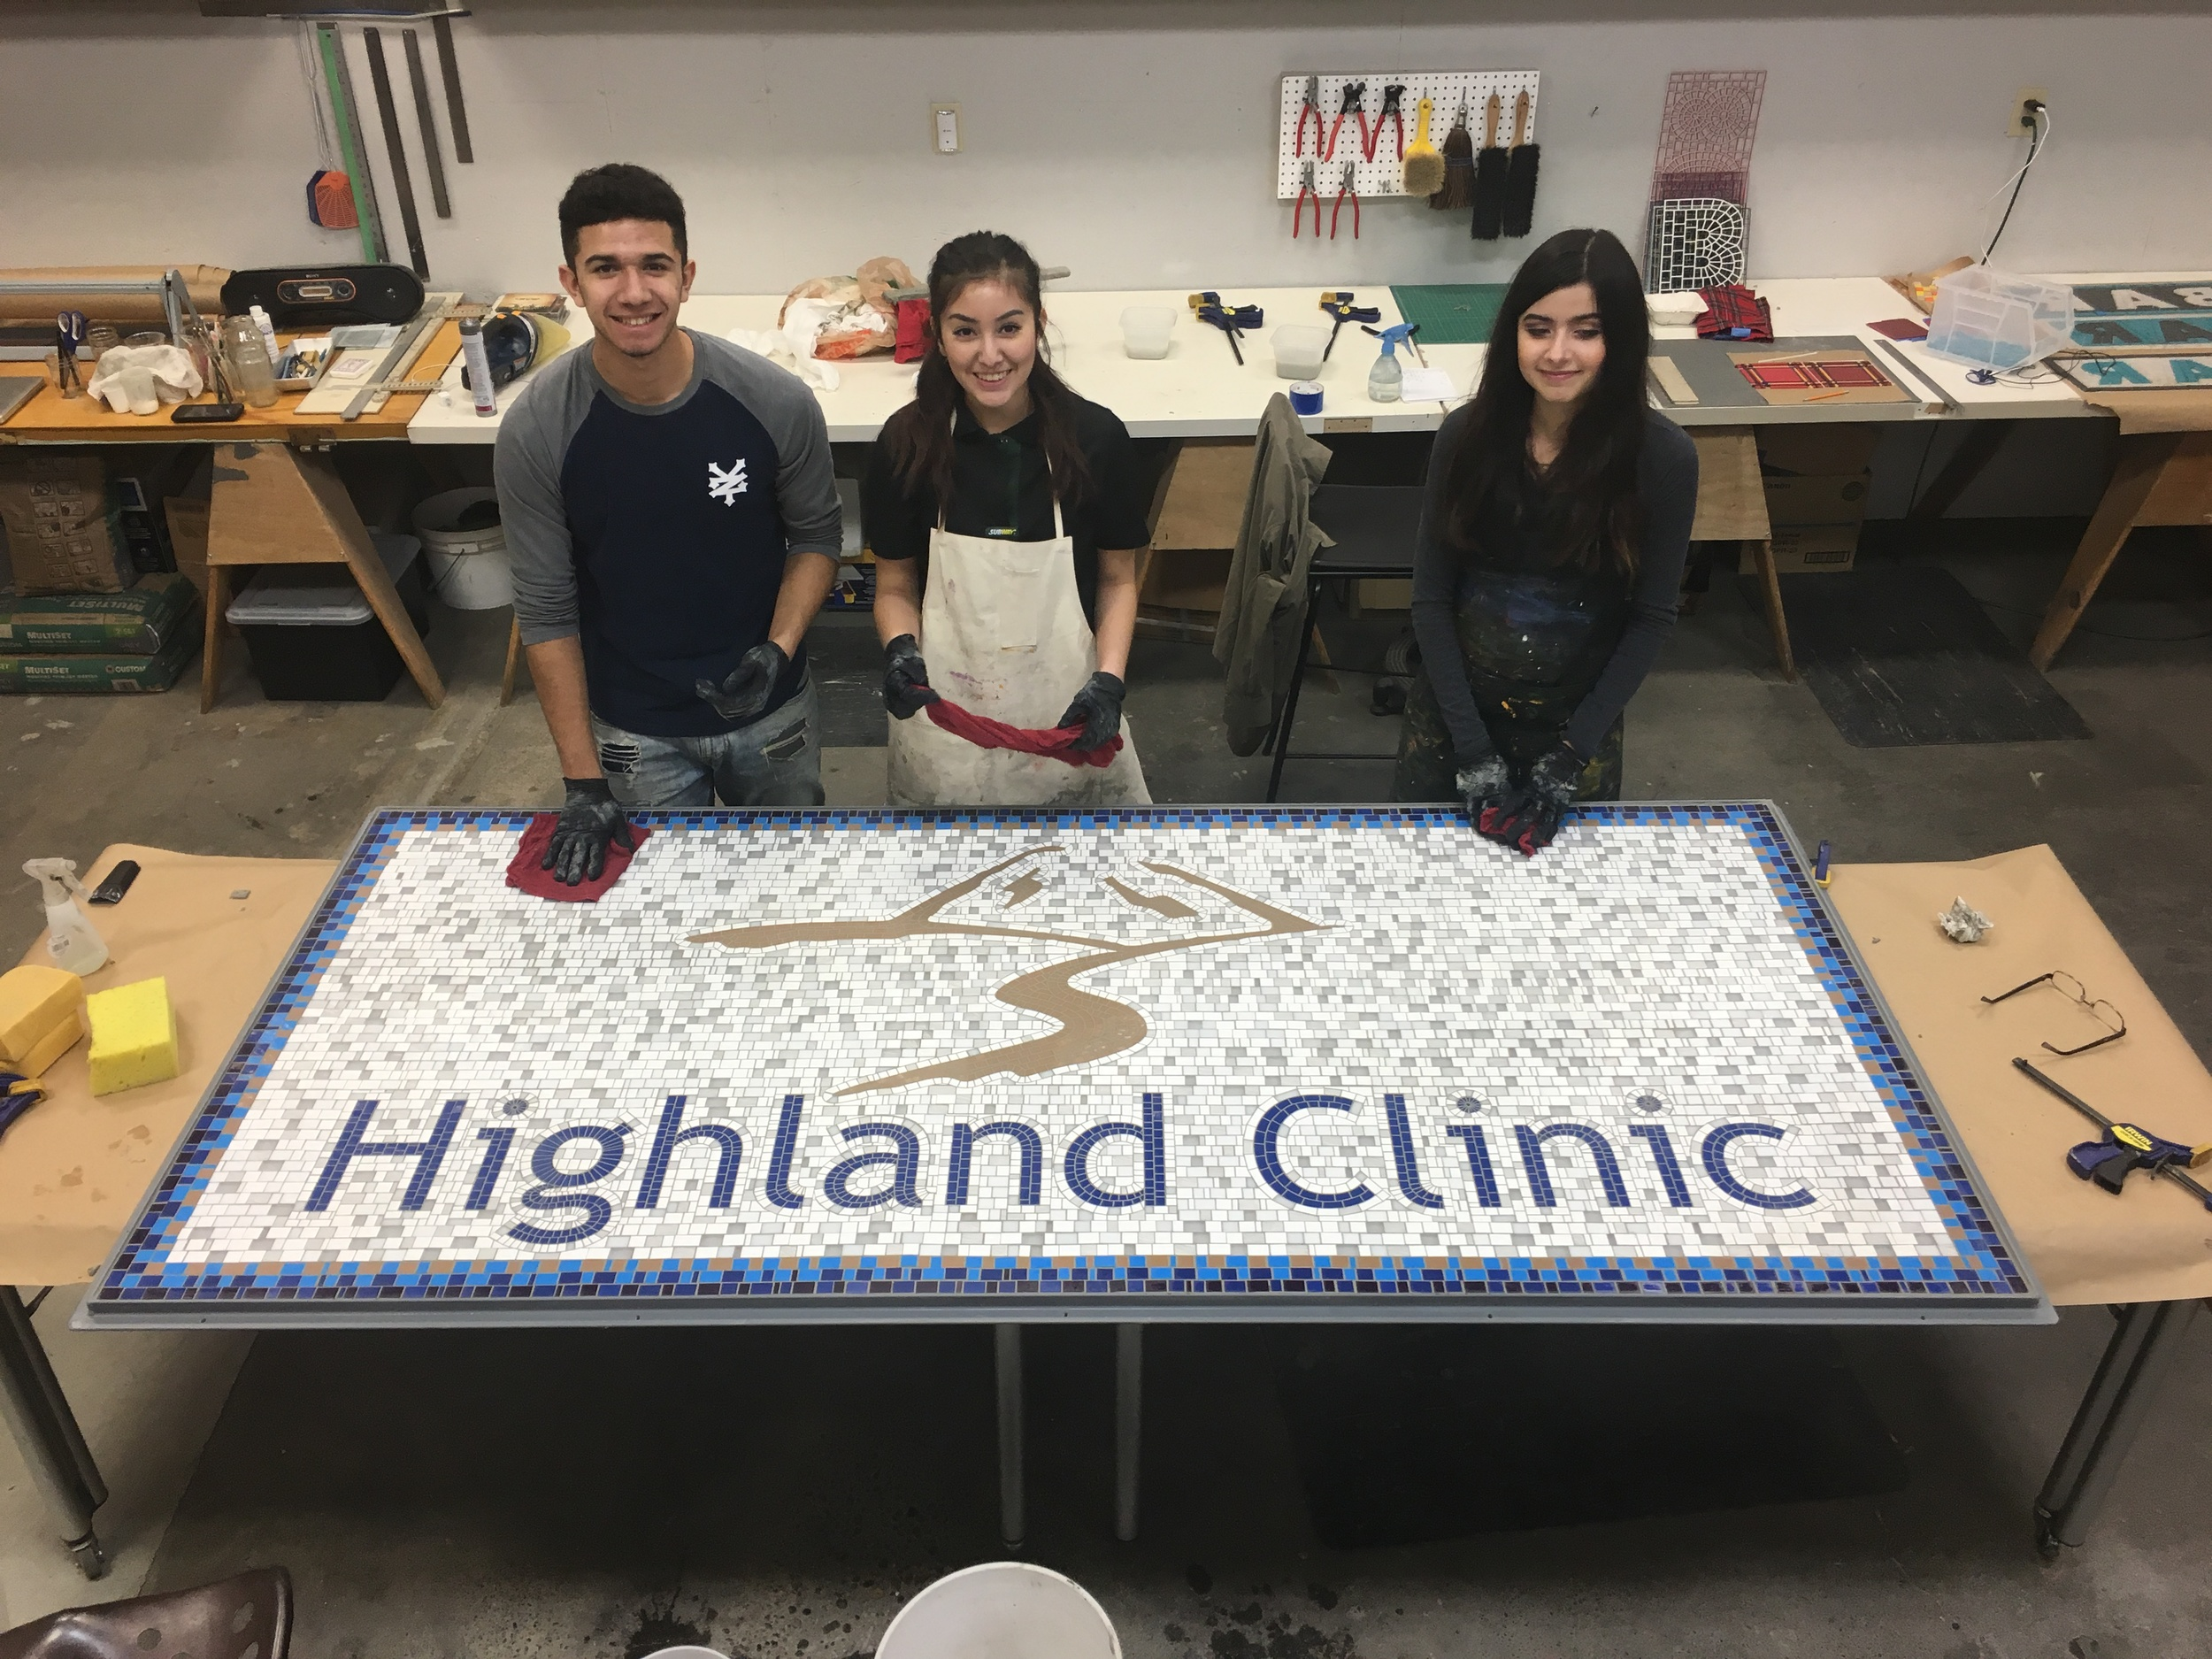 The finished sign with studio apprentices Saul, Lilly and Amparo